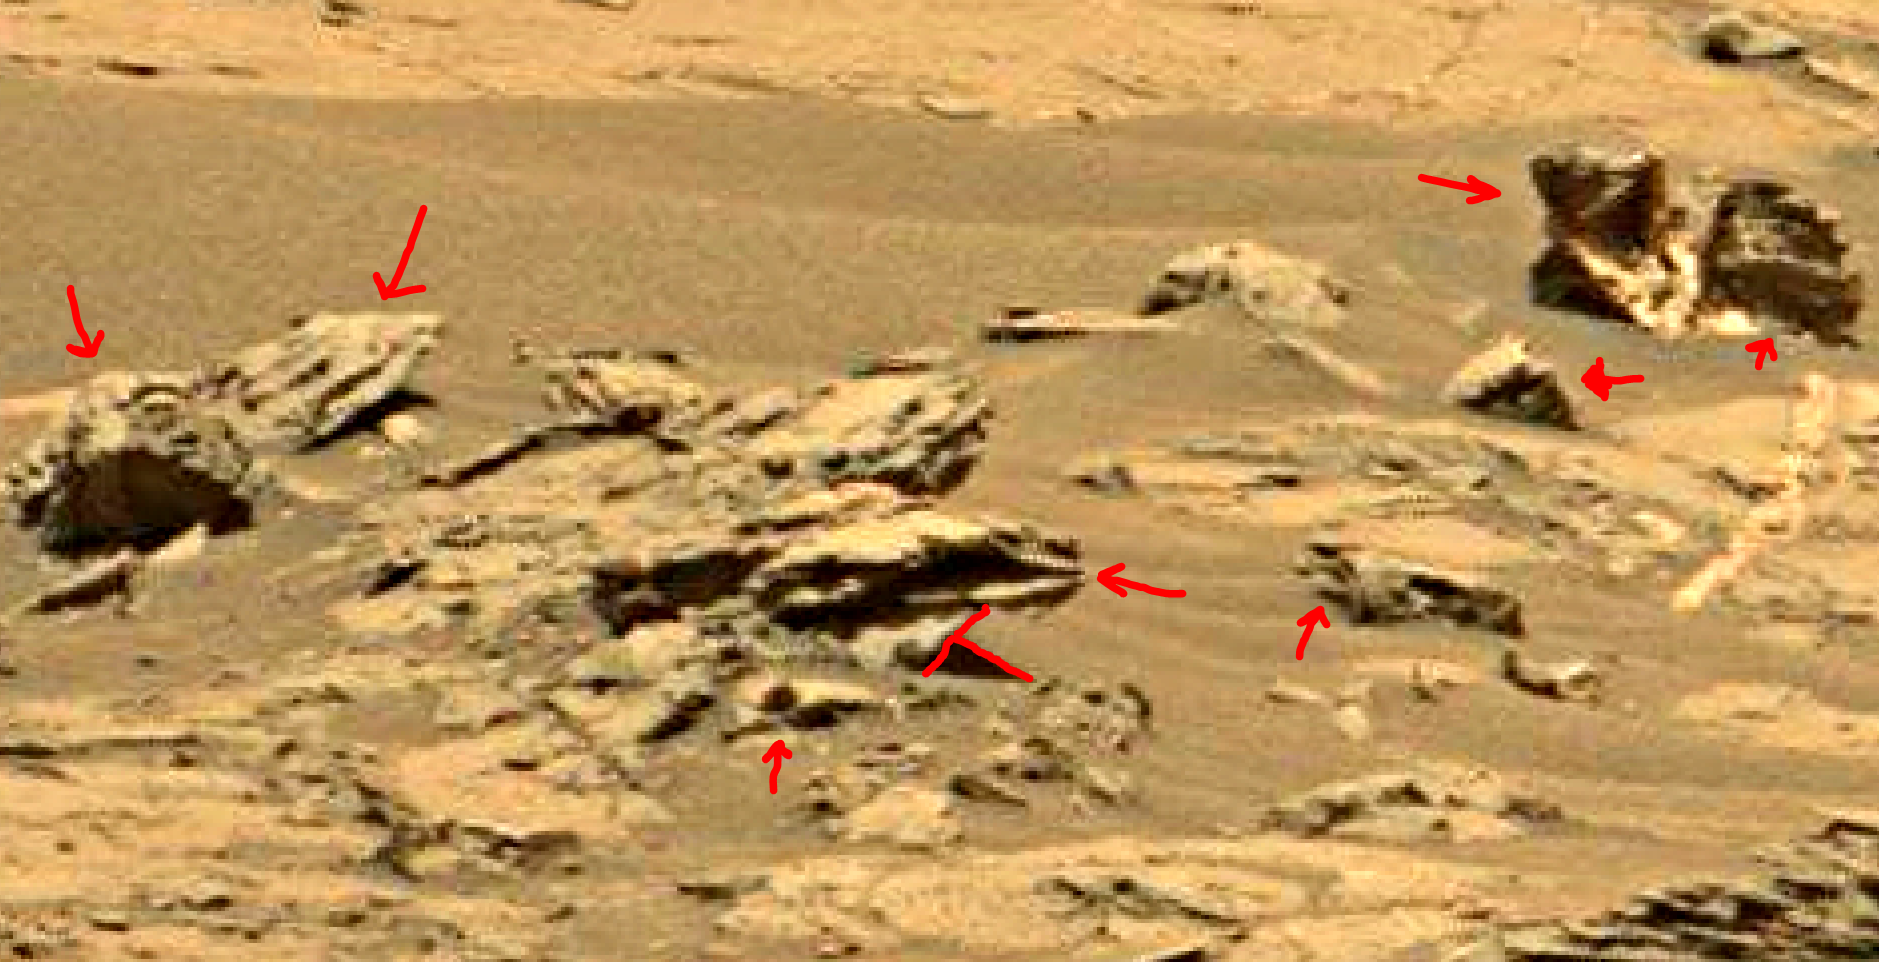 mars sol 1353 anomaly-artifacts 10a was life on mars